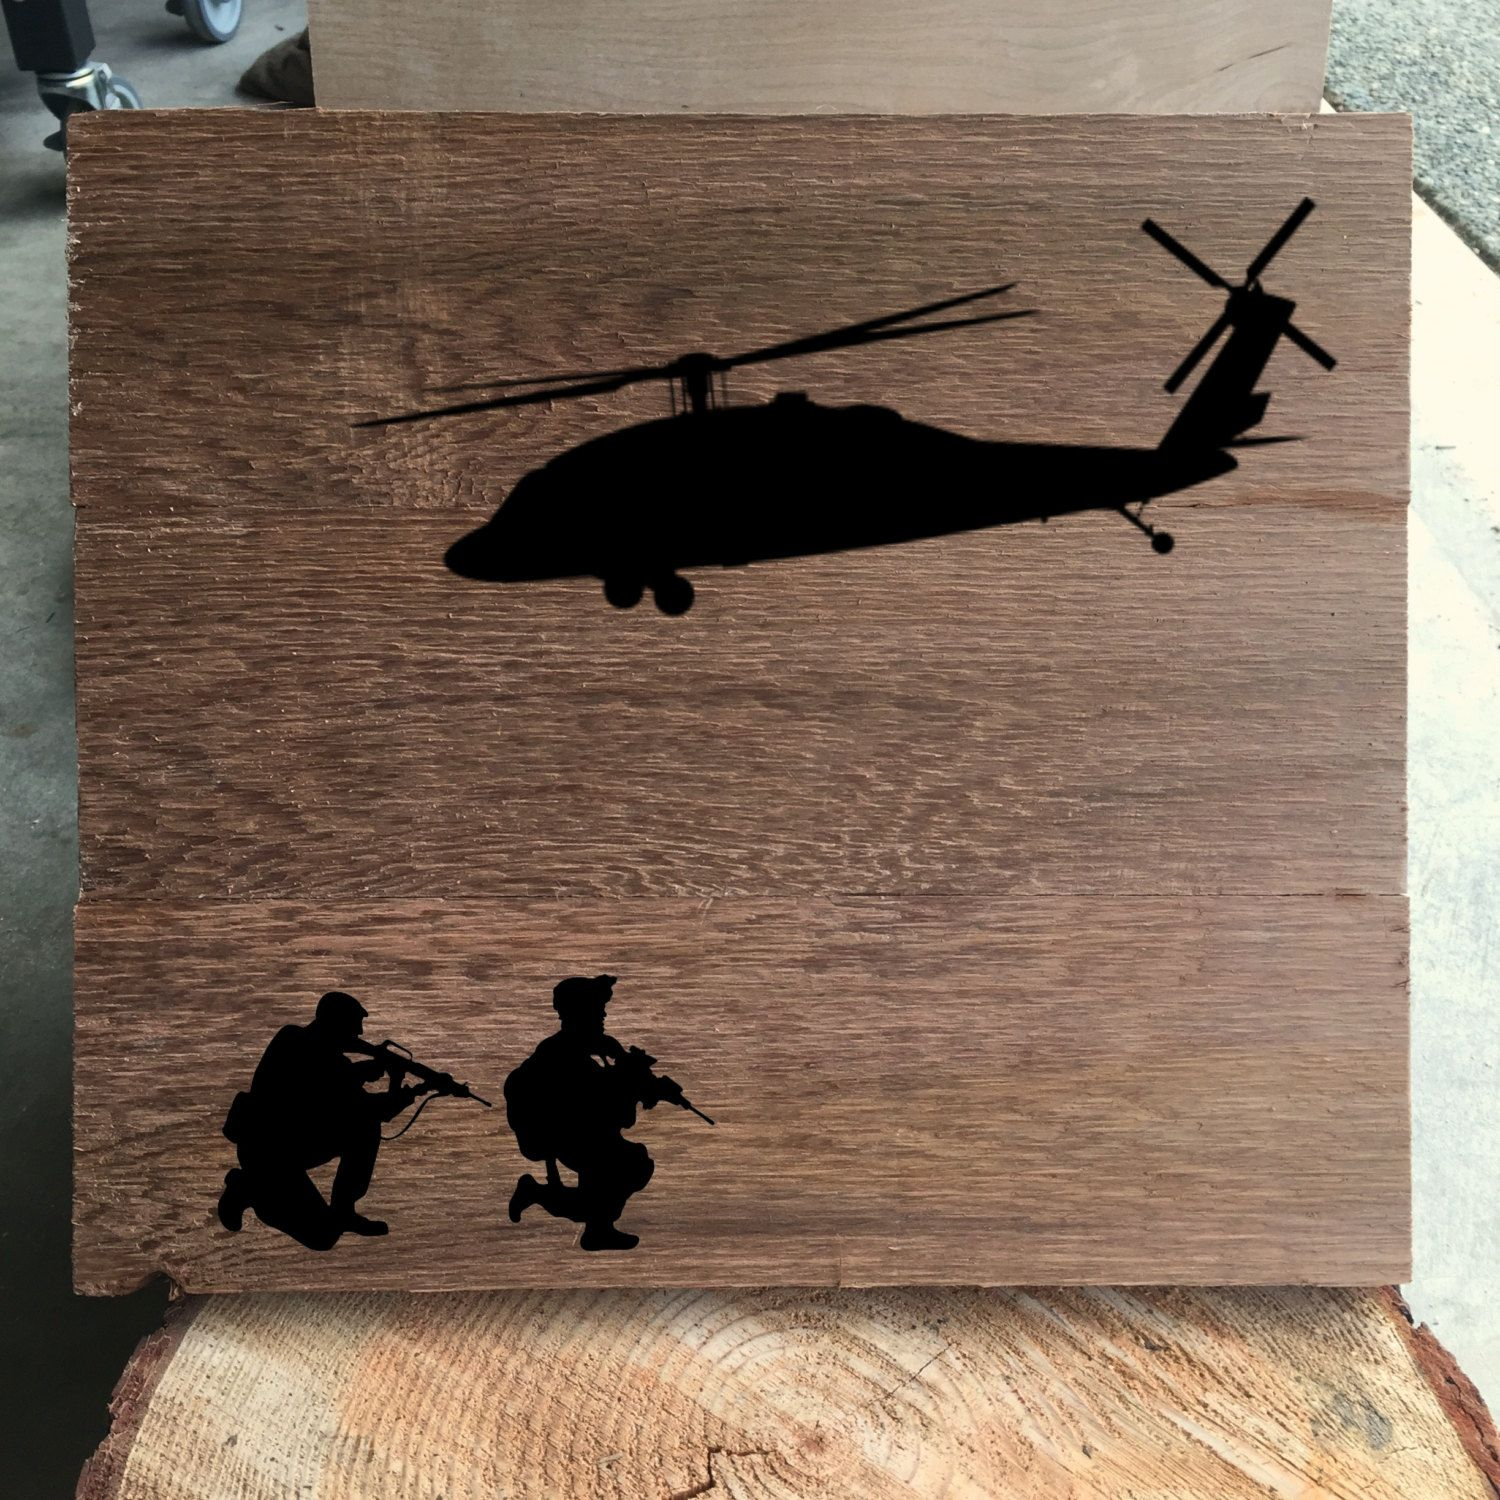 Military Blackhawk UH-60 Helicopter with Soldiers - Rustic Wood Sign - Hail & Farewell Gift - Army Helicopter Wood Decor - Primitive Decor